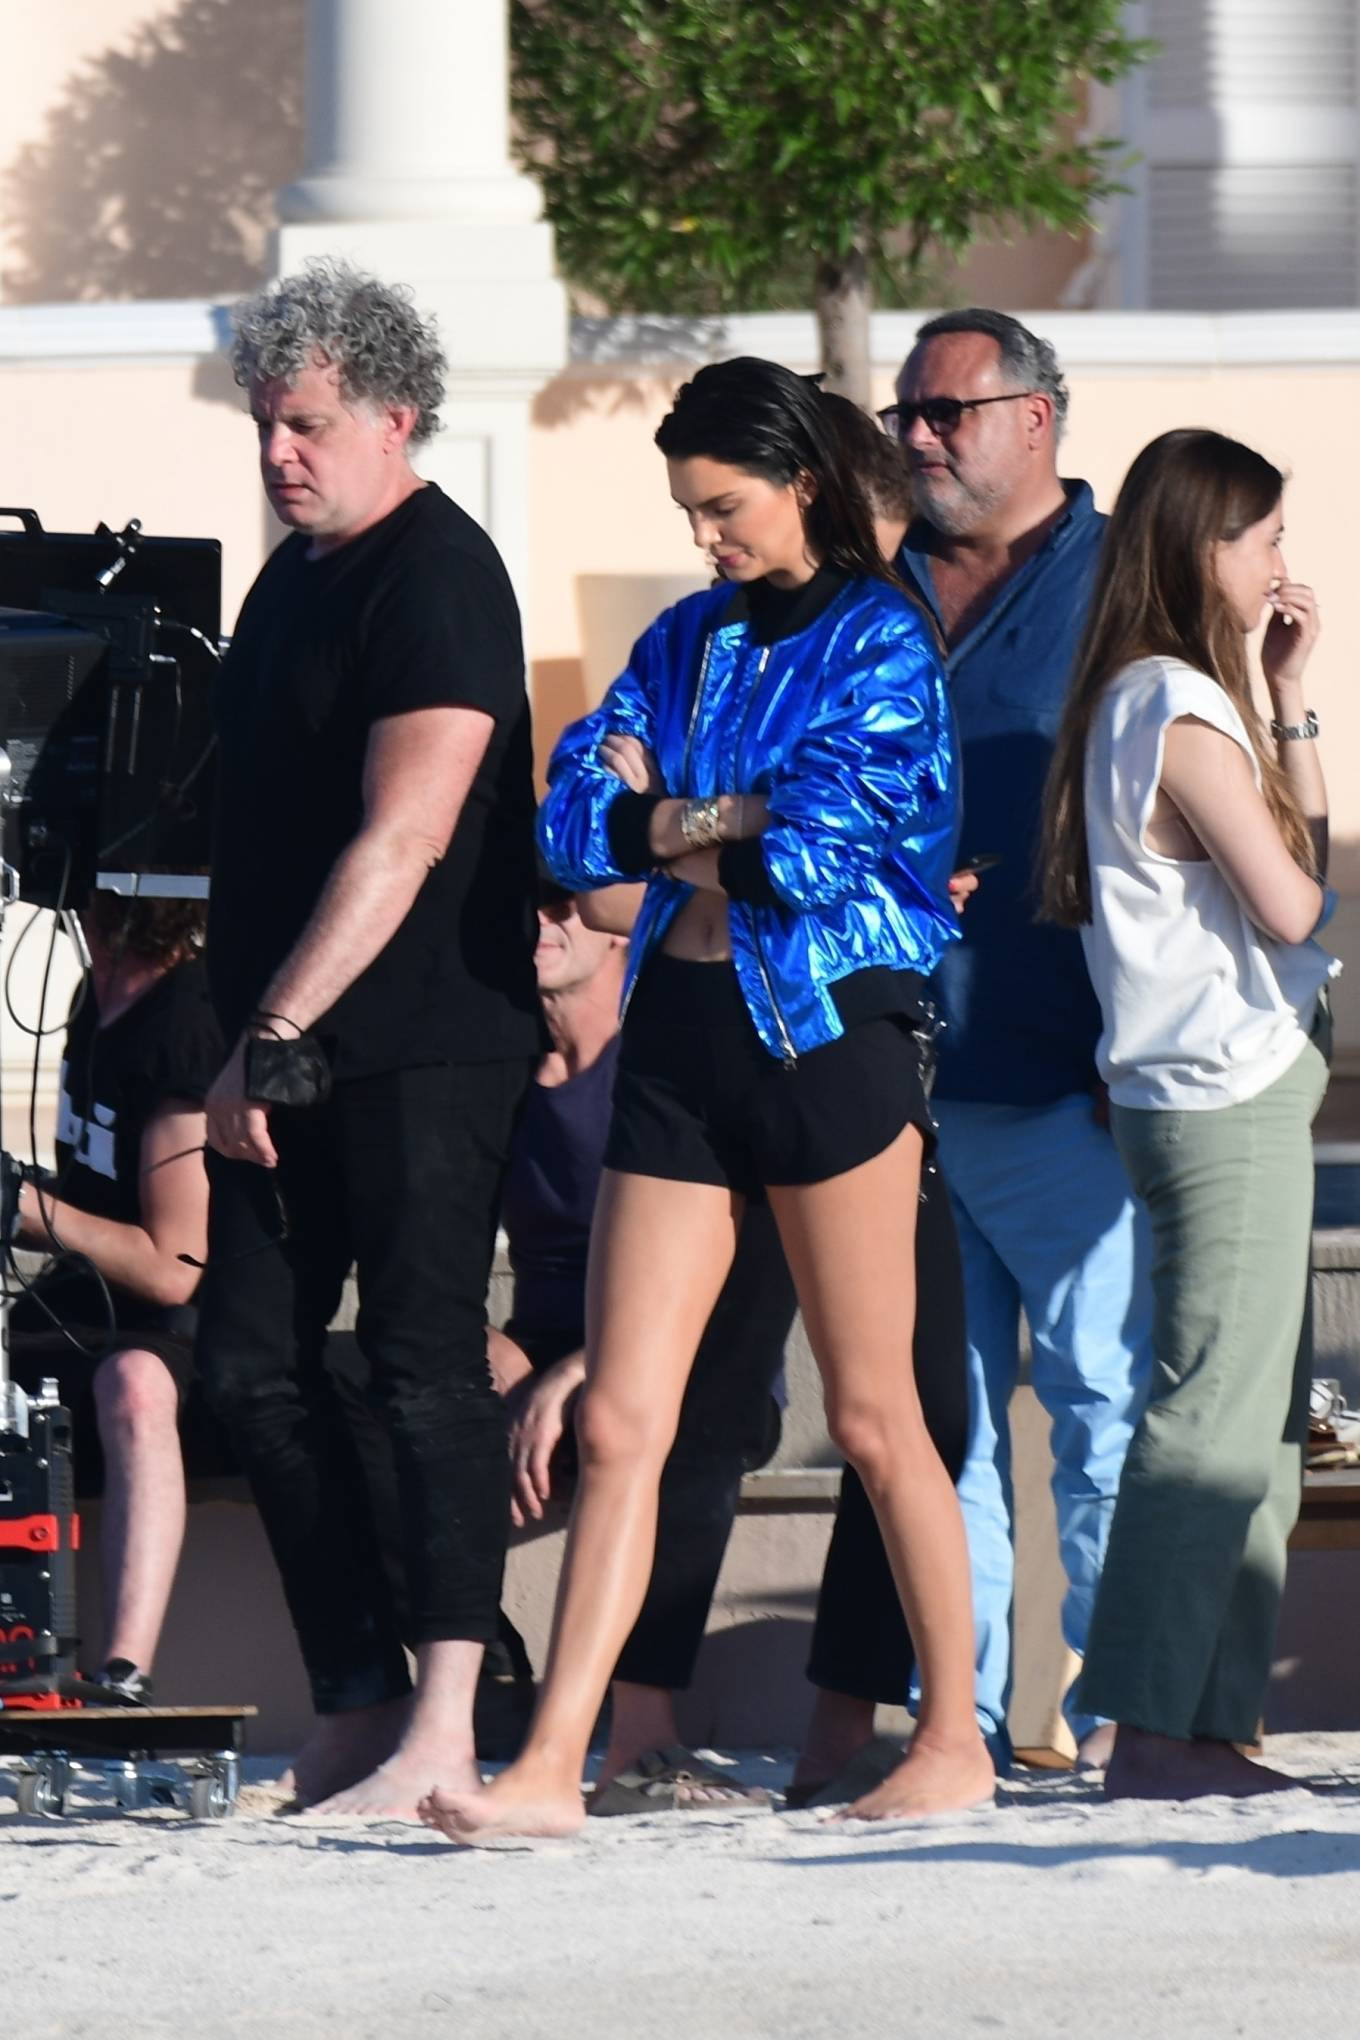 Kendall Jenner, blue jacket, black crop top, front zip, waist length, rolled sleeves, baseball collar, open front, black bikini bottom. Kendall Jenner wearing a metallic blue open front jacket with rolled sleeves and baseball collar